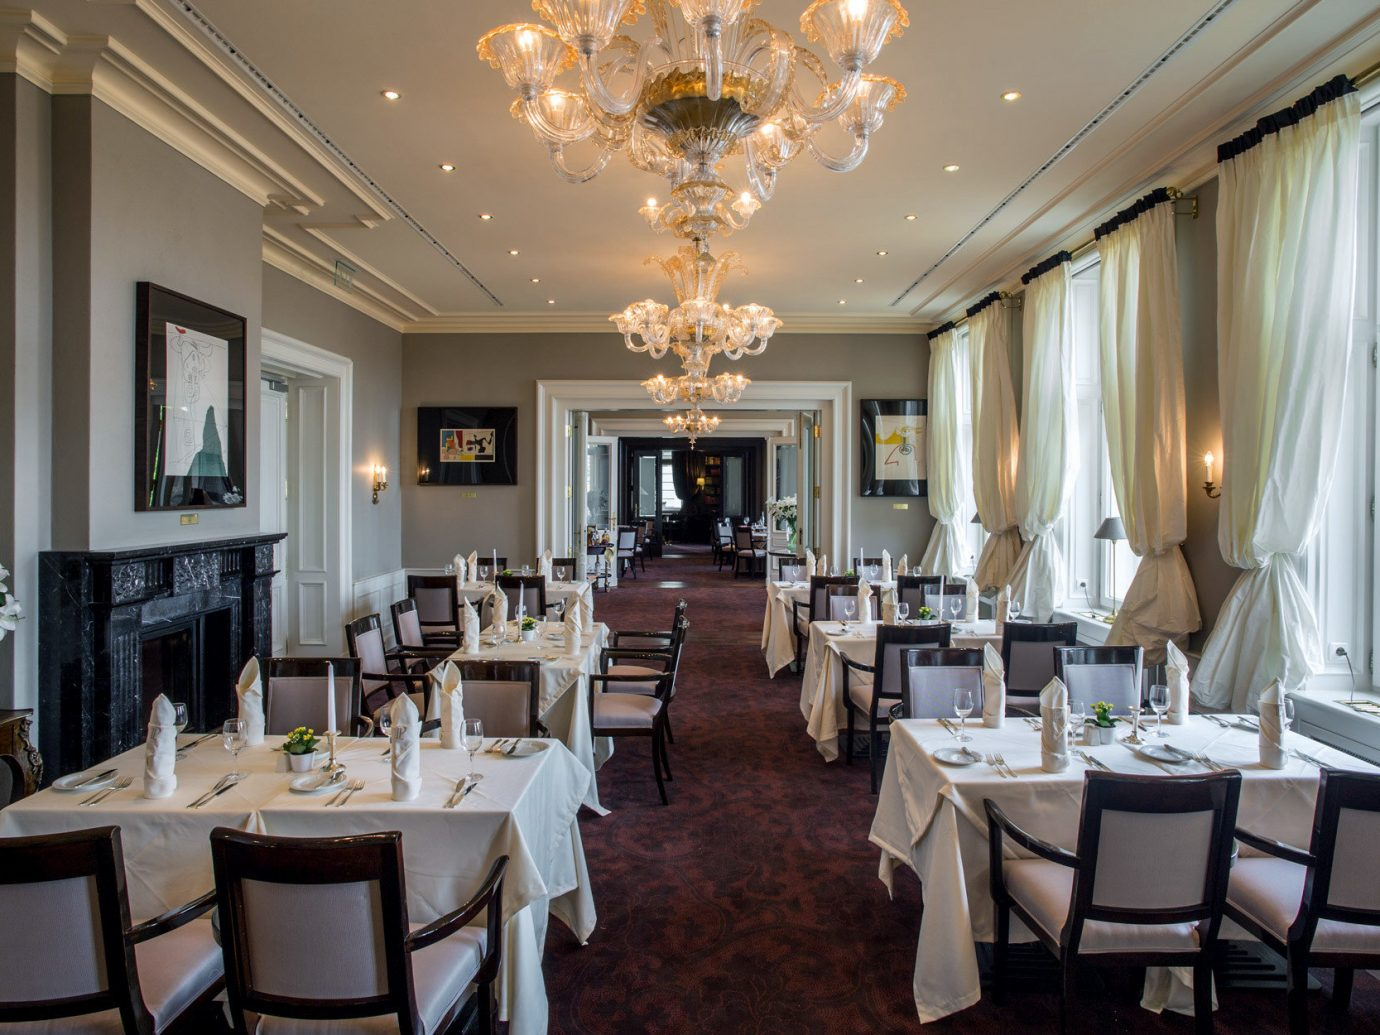 City Classic Dining Drink Eat Elegant europe Historic Hotels Prague indoor floor ceiling chair room window function hall dining room meal estate restaurant ballroom interior design furniture conference hall mansion decorated area several